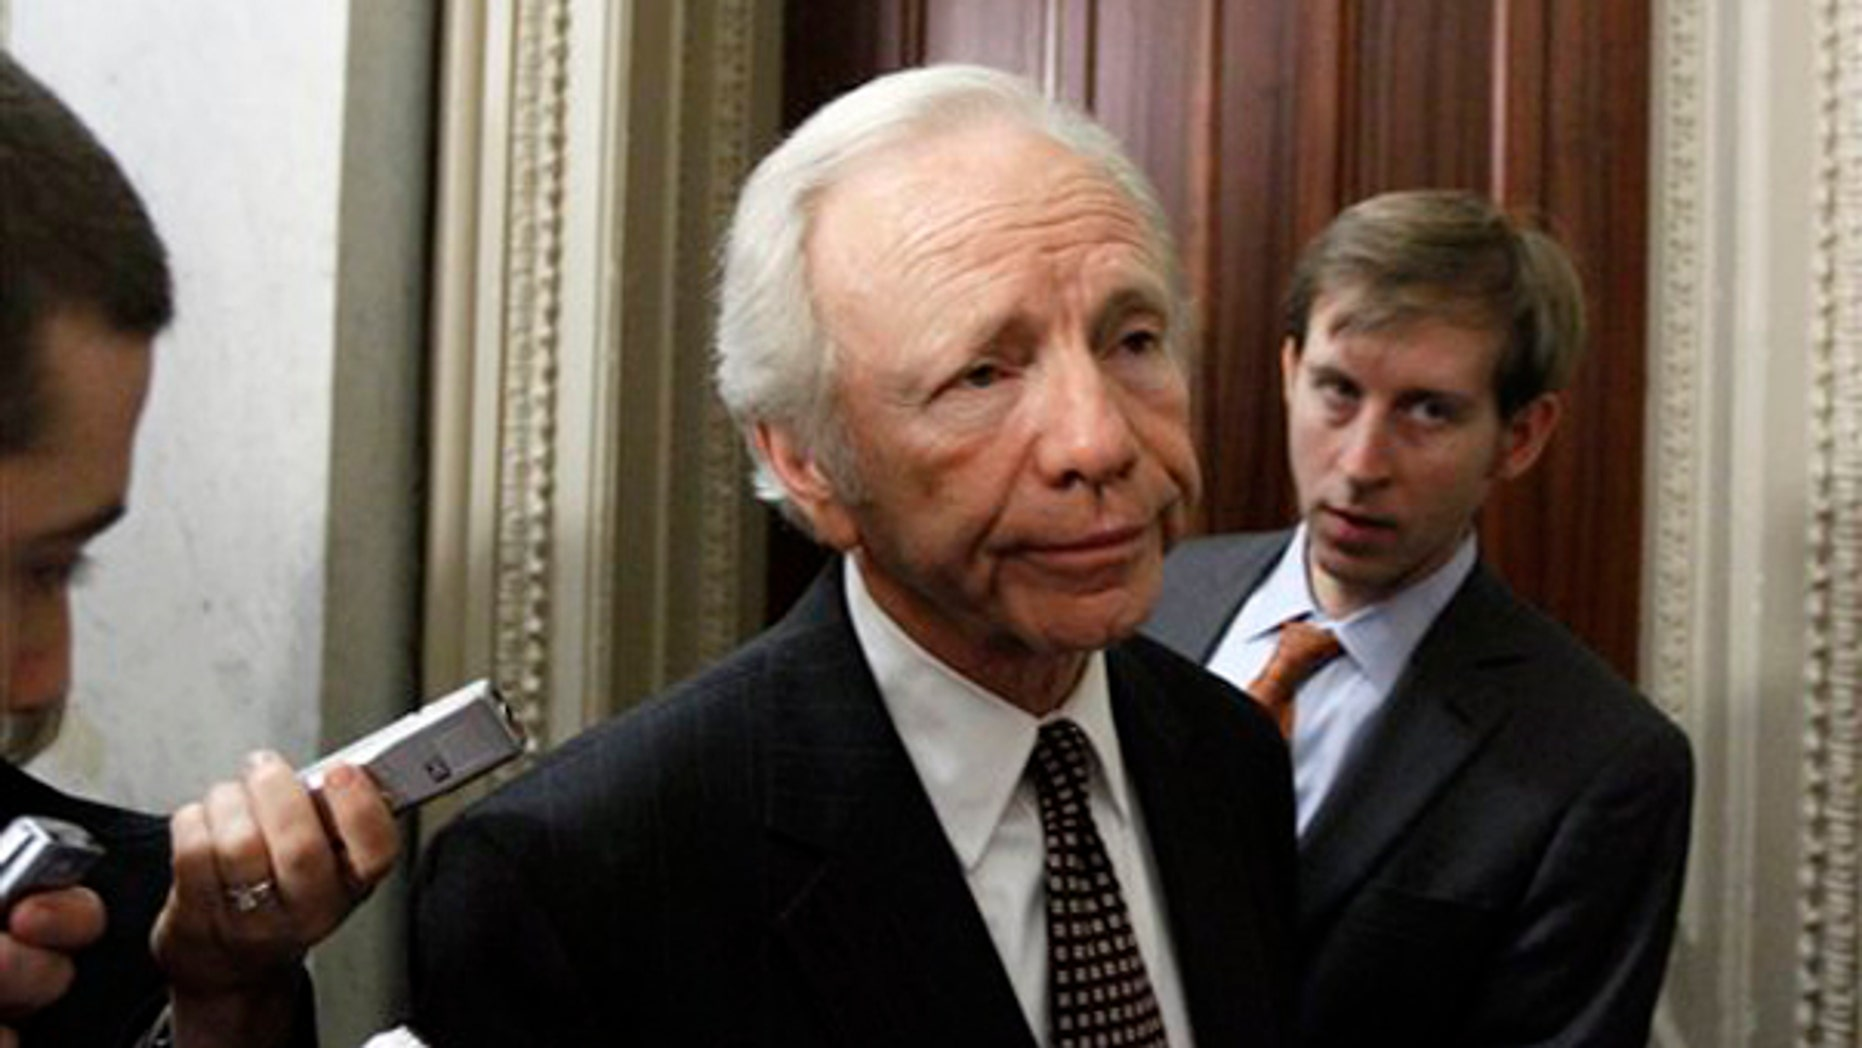 Sen. Joe Lieberman, I-Conn., pauses before heading into a Democratic caucus on health care reform in the Capitol in Washington, Wednesday, Nov. 18, 2009.(AP Photo/Alex Brandon)